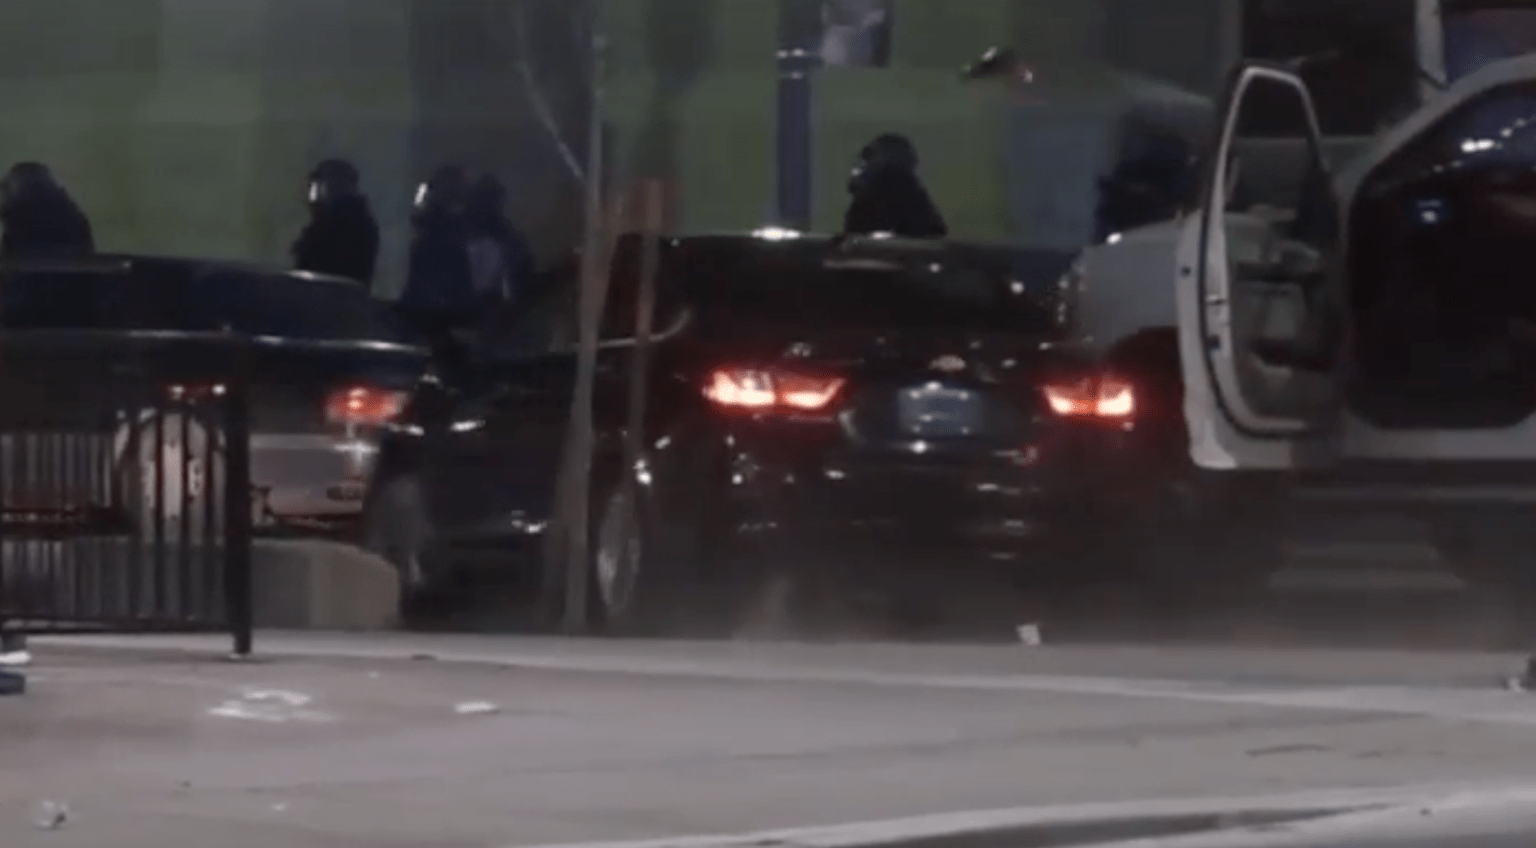 Denver: Car hits, seriously injuries three cops, takes off. Chief - Weapons and gasoline planted in protest areas.